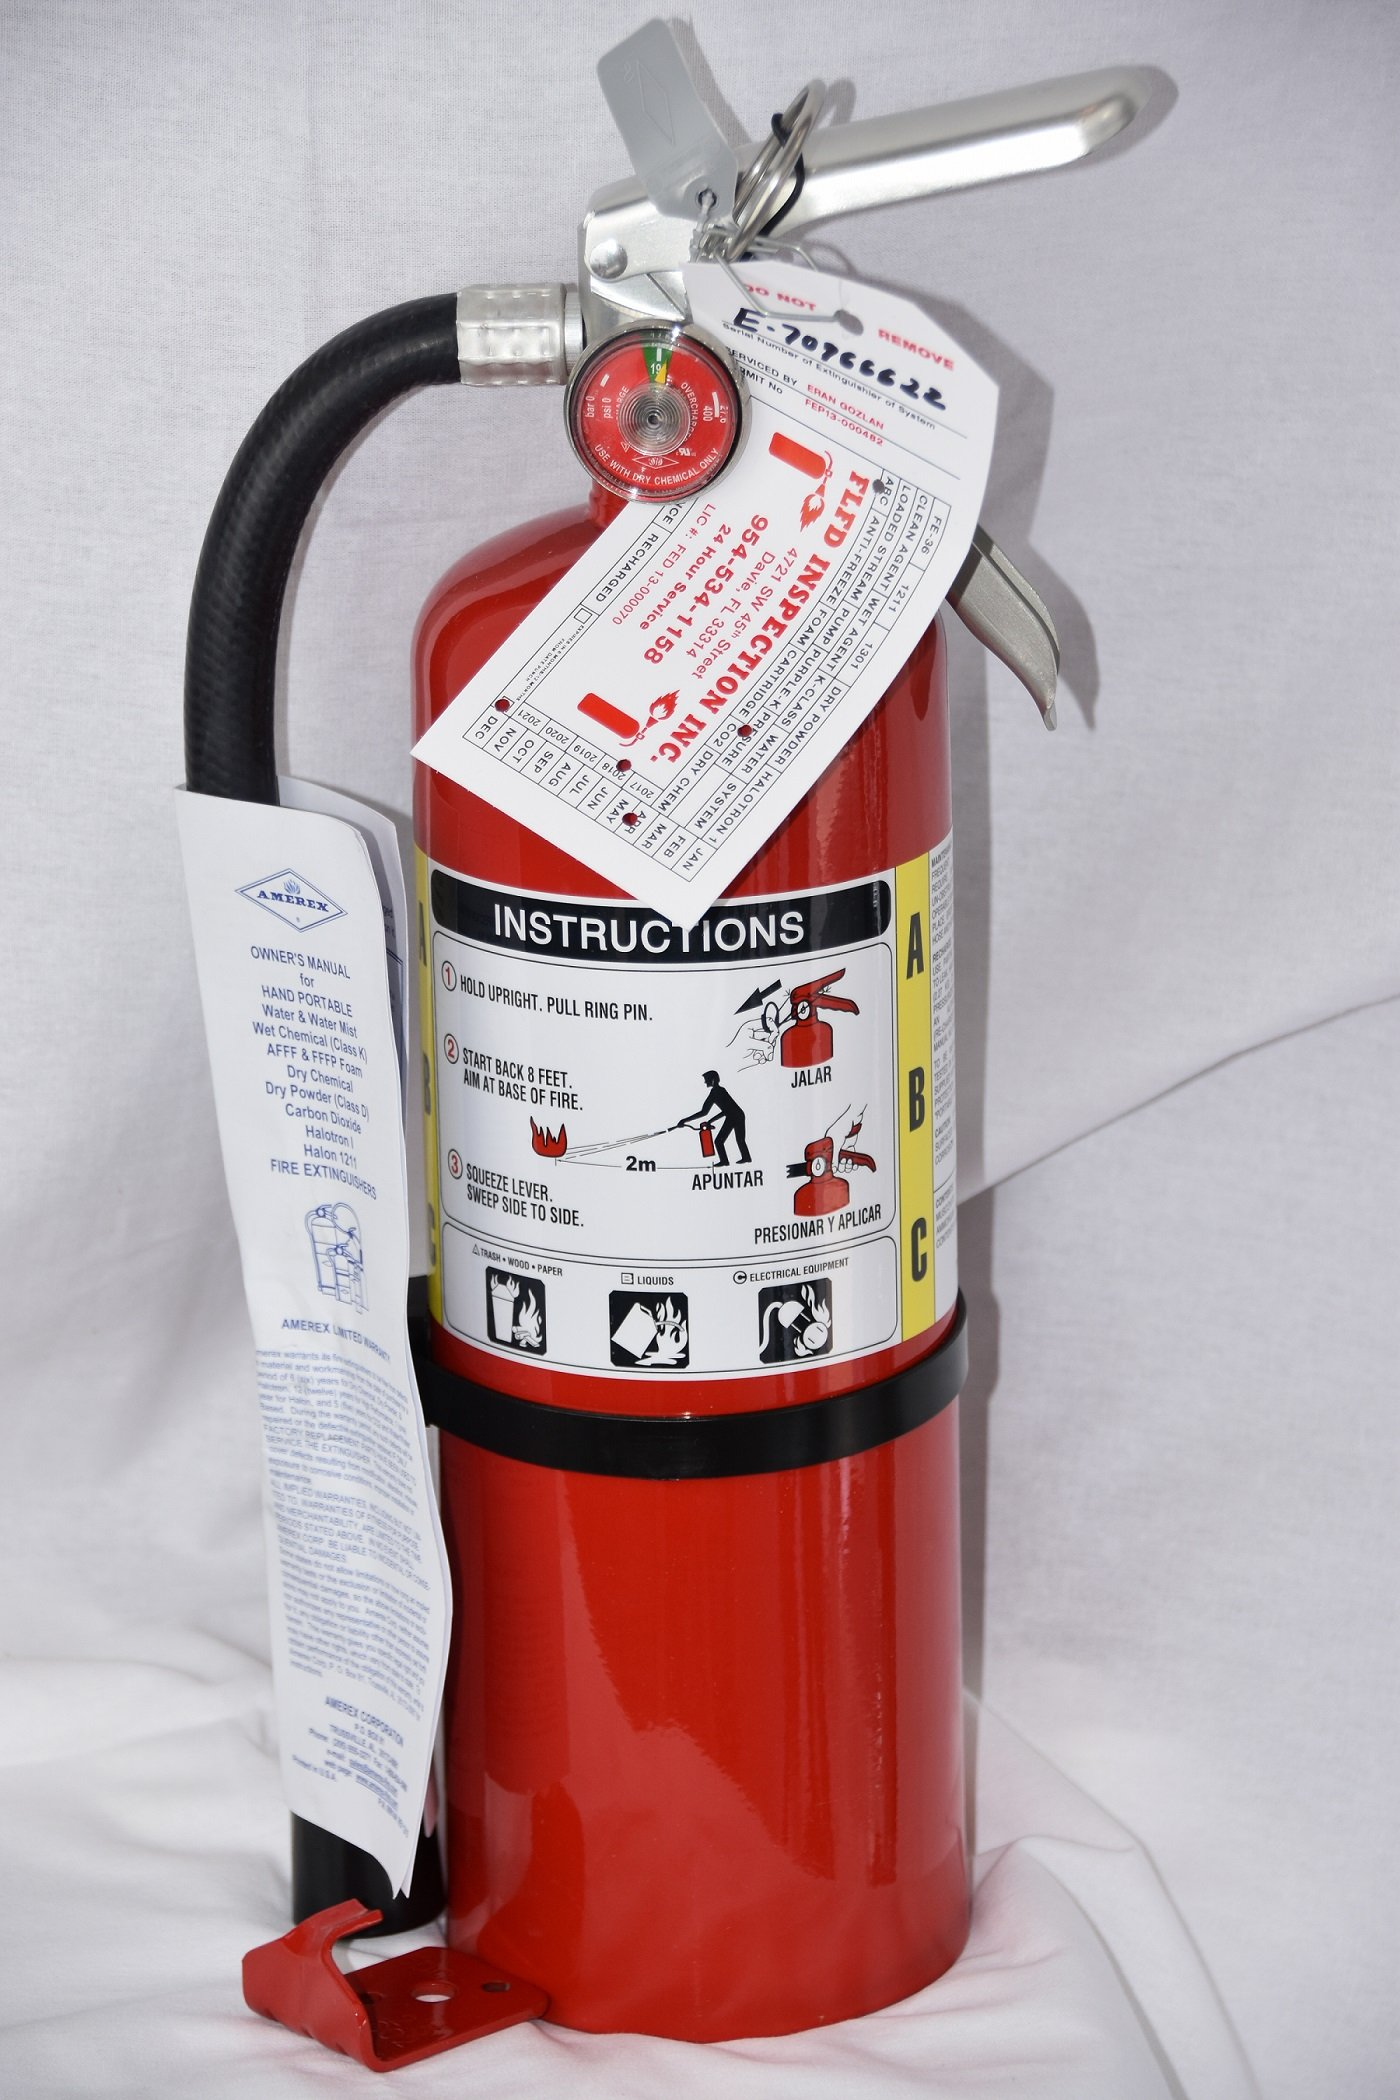 (Lot of 1) 5 Lb. Type ABC Dry Chemical Fire Extinguishers, with 1 - Wall Bracket and 1 - Certification Tag - Ready for Fire Inspections - 3A - 40 BC Rating by Amerex